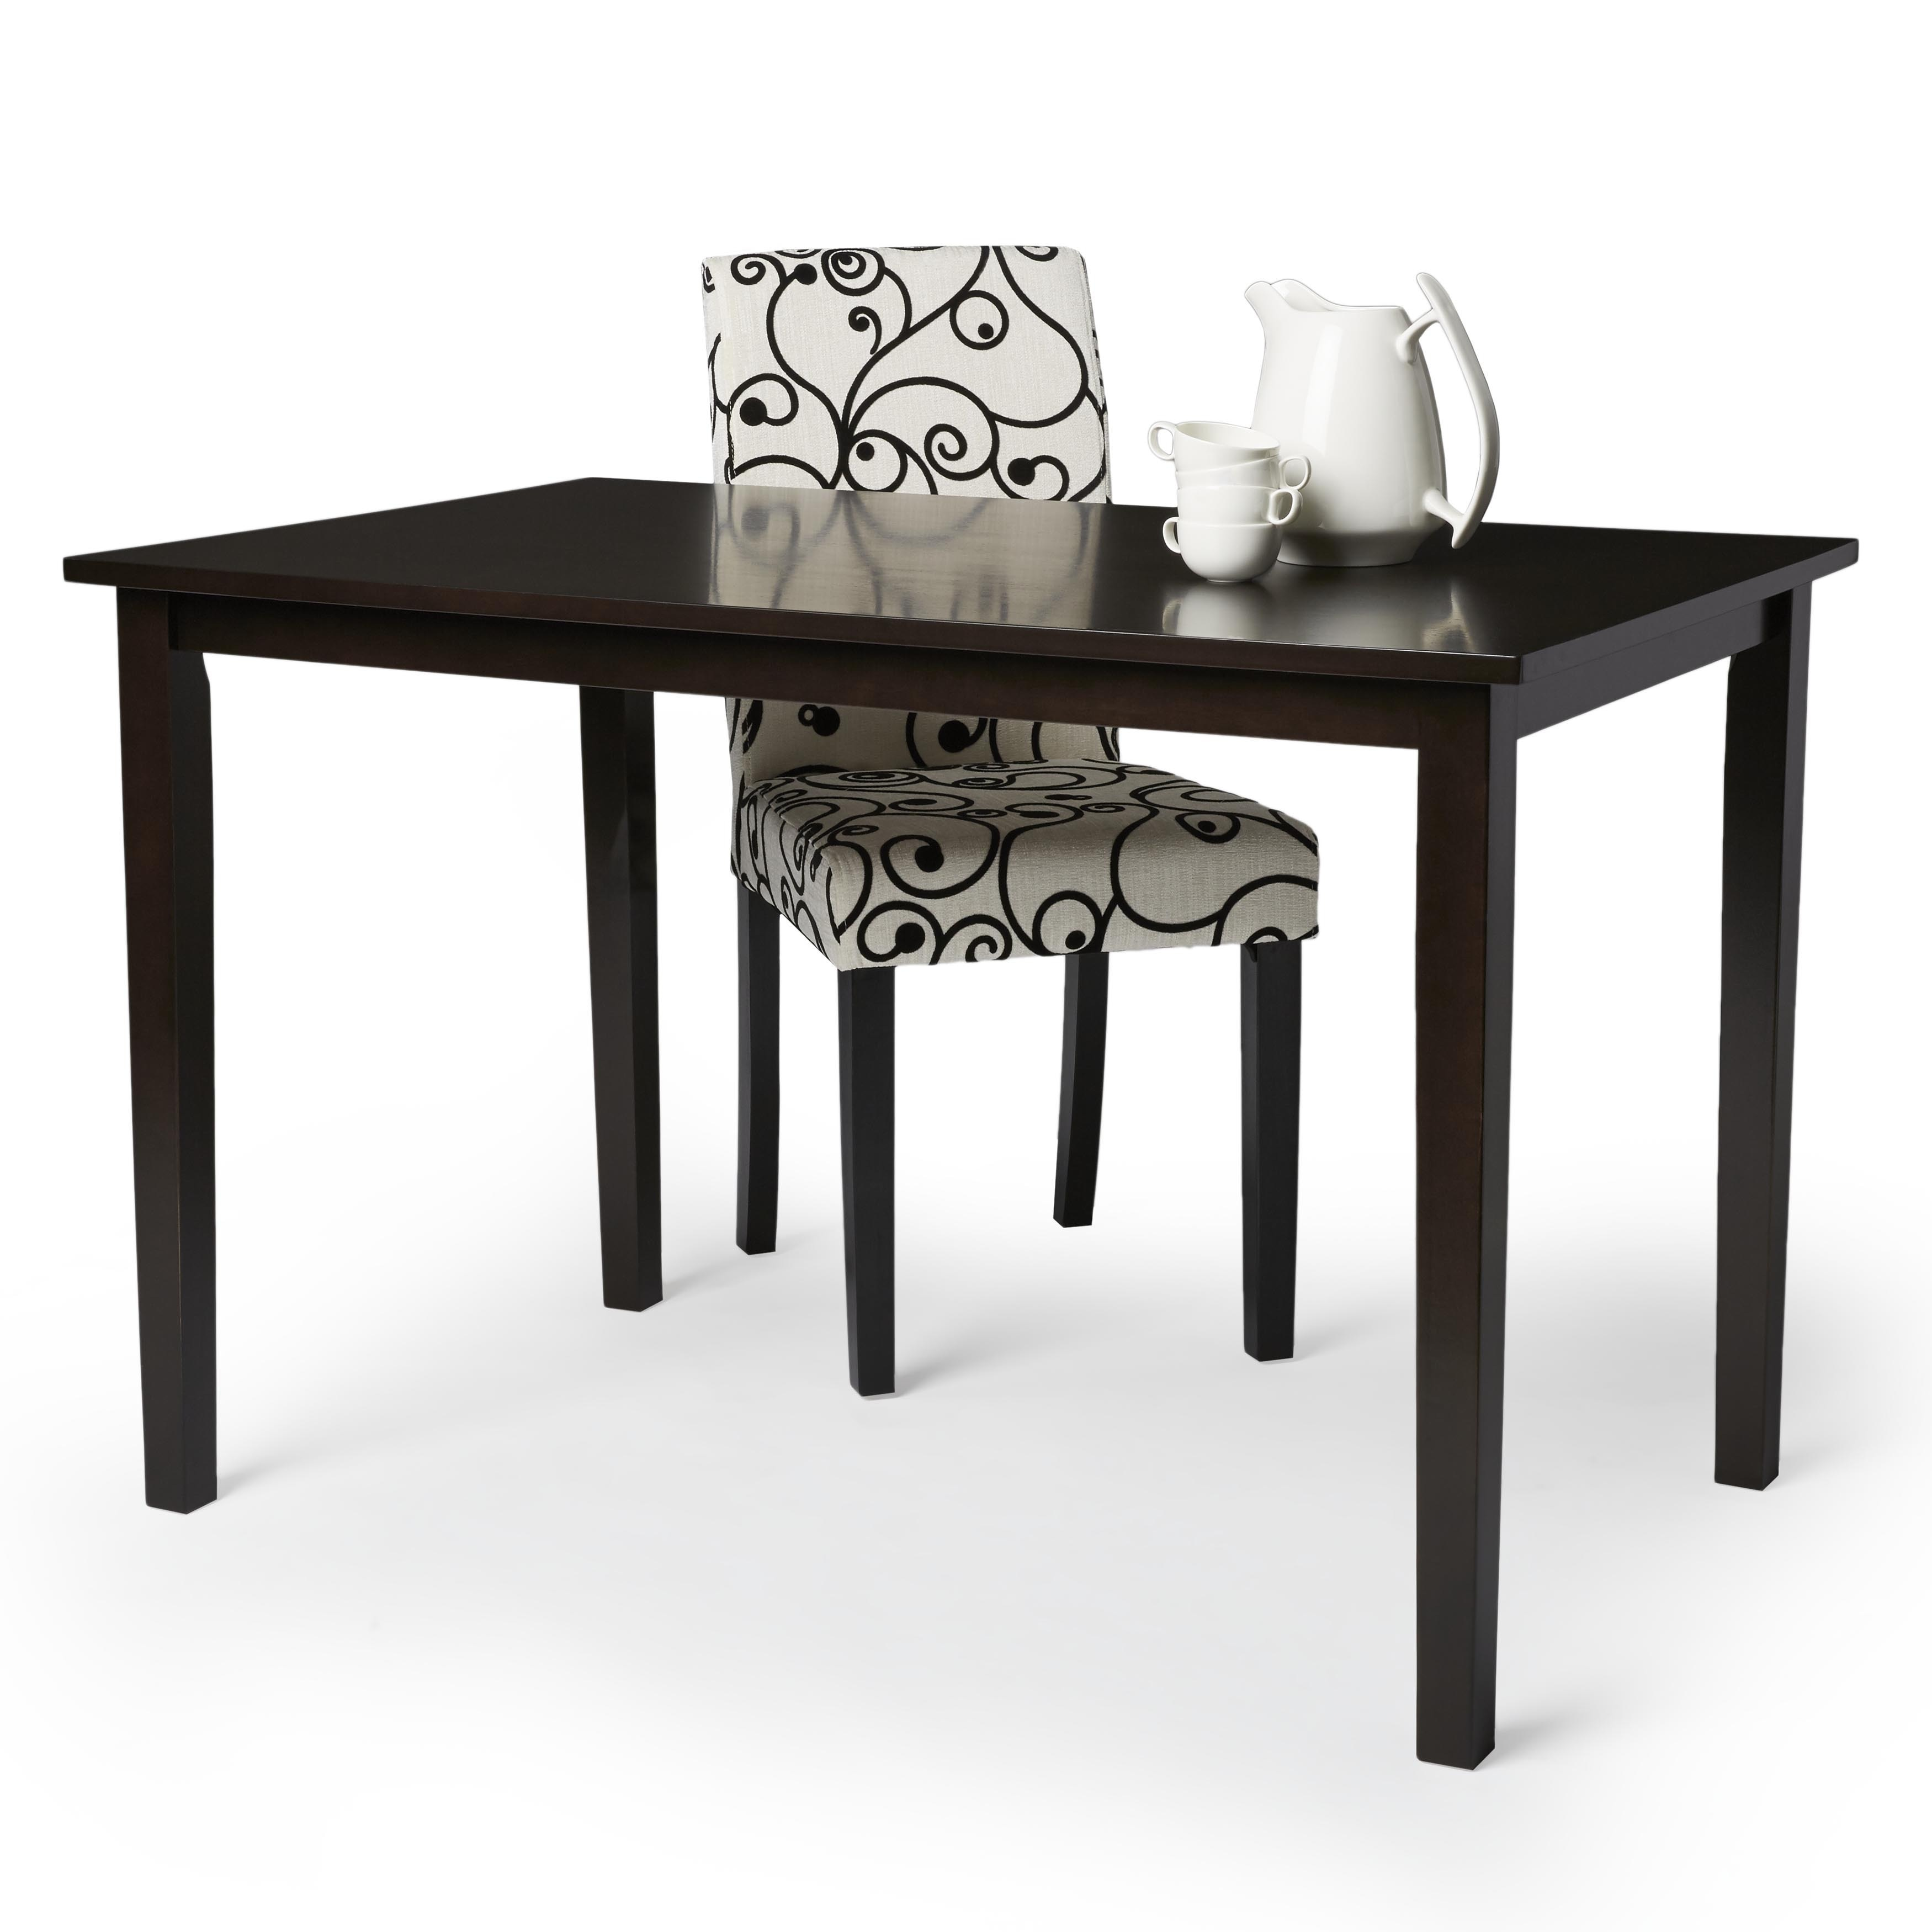 Simple Living Shaker Dining Table On Free Shipping Today 4103881